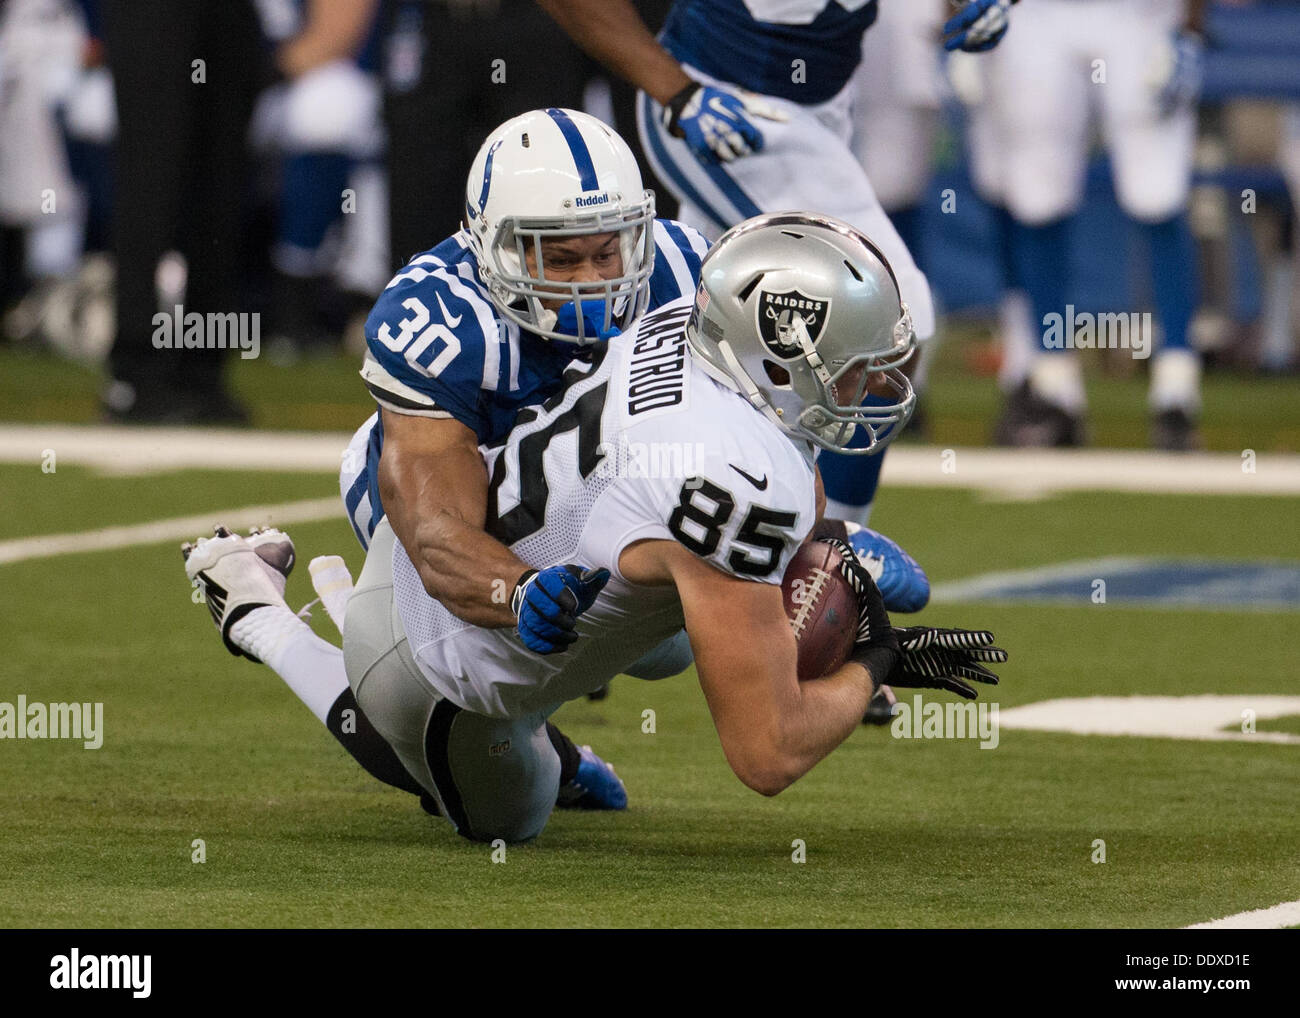 Laron Landry Colts Tackle